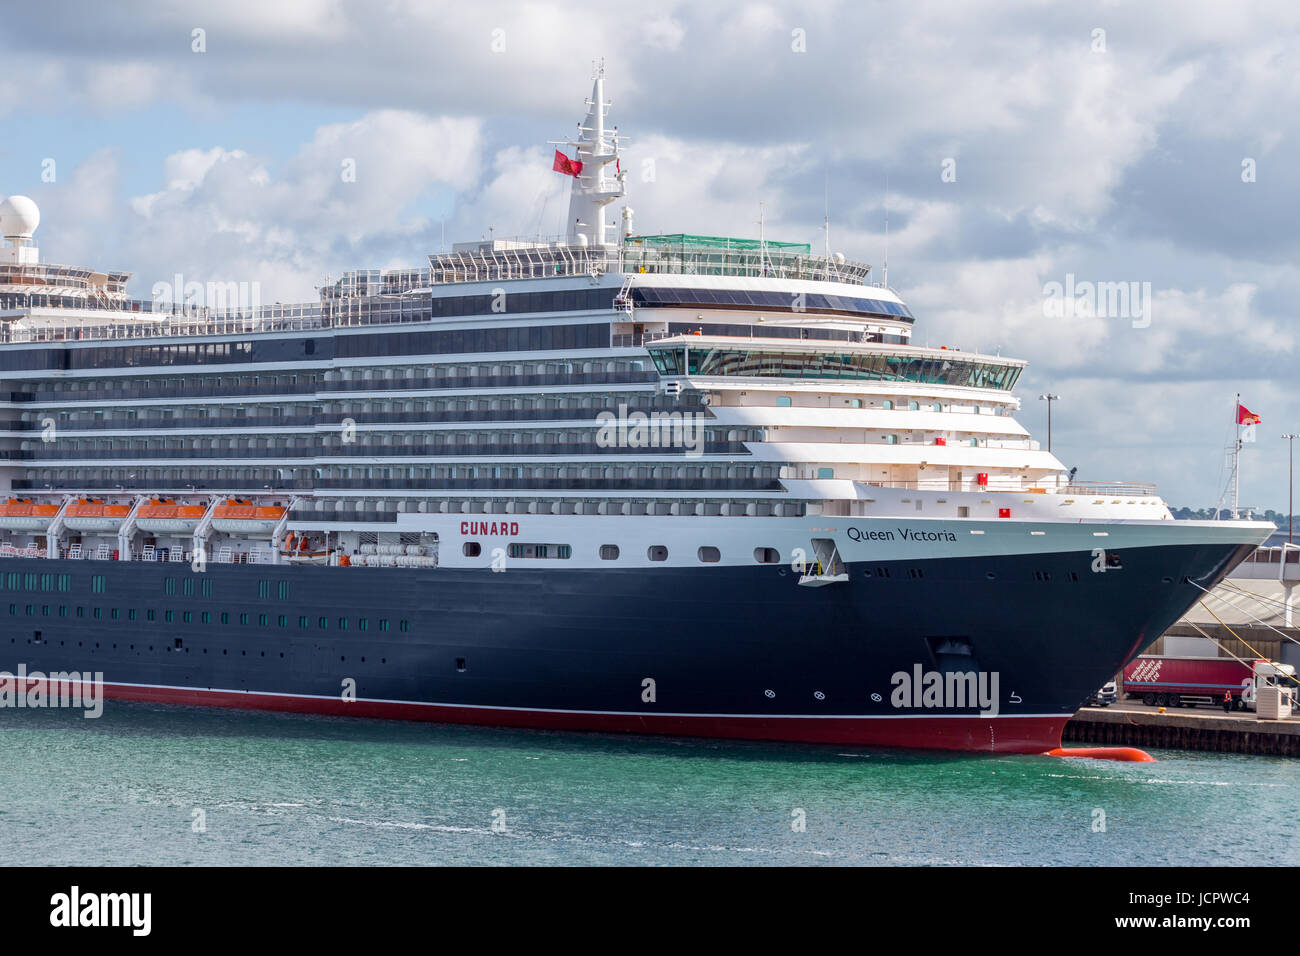 Cunard's Queen Victoria cruise ship docked in Southampton - Stock Image